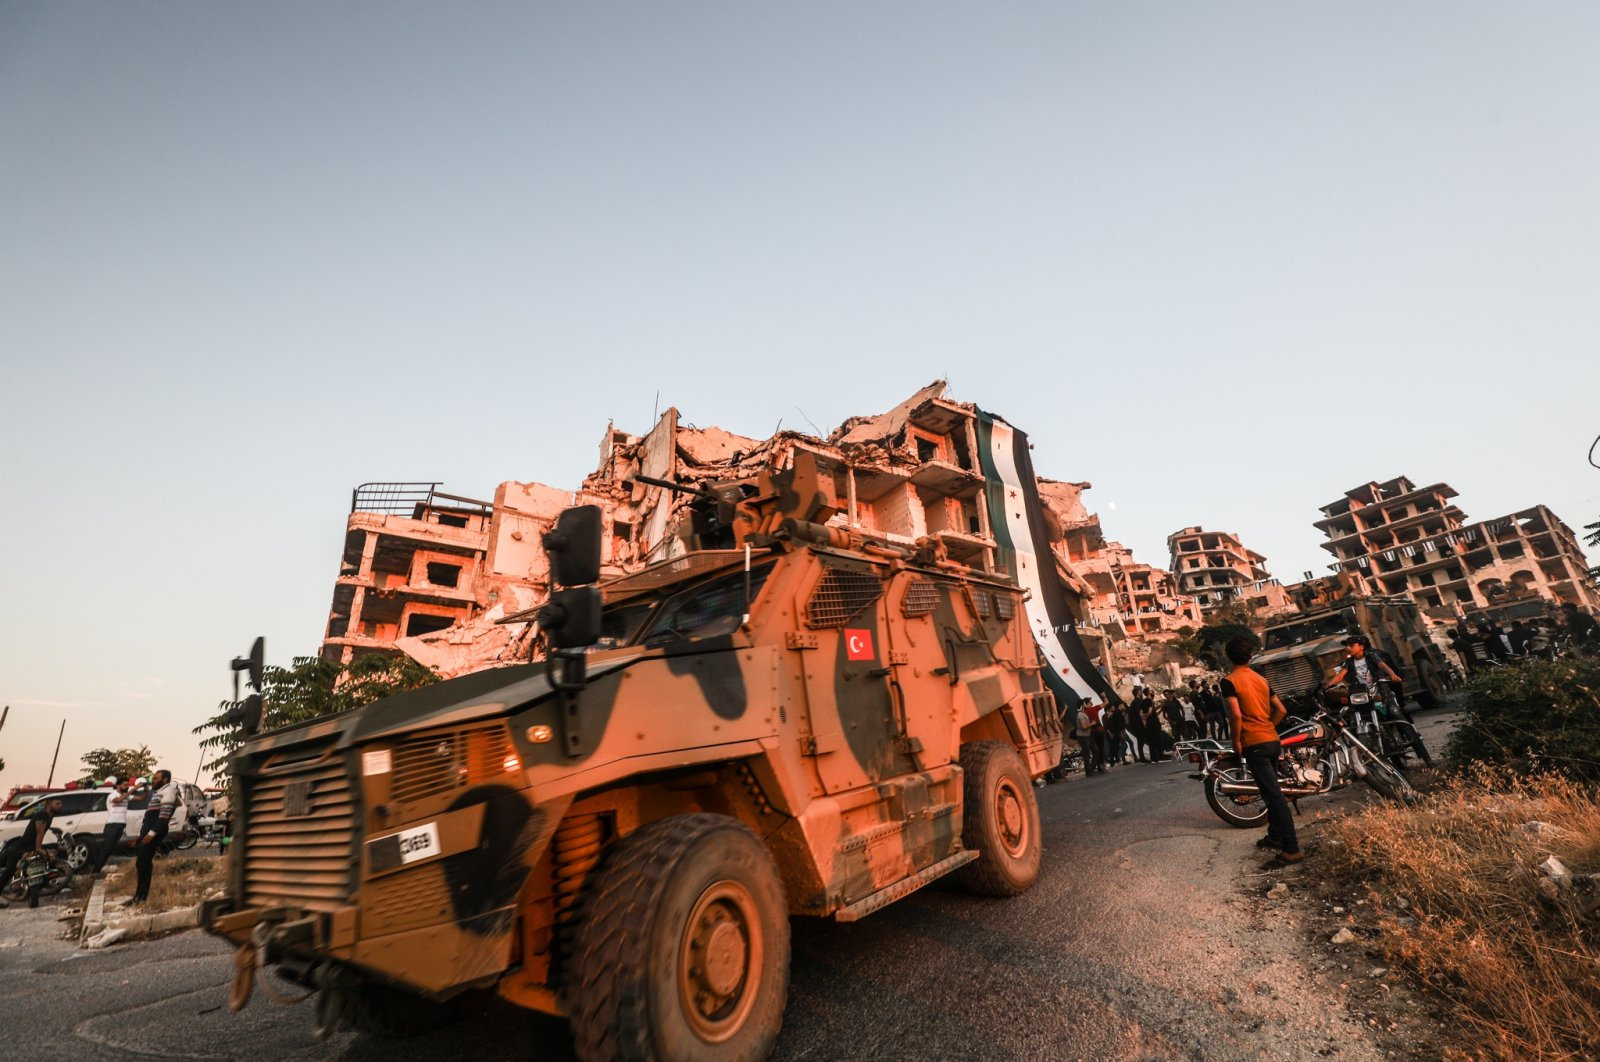 A Turkish military vehicle passes Syrians gathering in an anti-regime protest, Idlib, northern Syria, Aug. 28, 2020. (Photo by Getty Images)